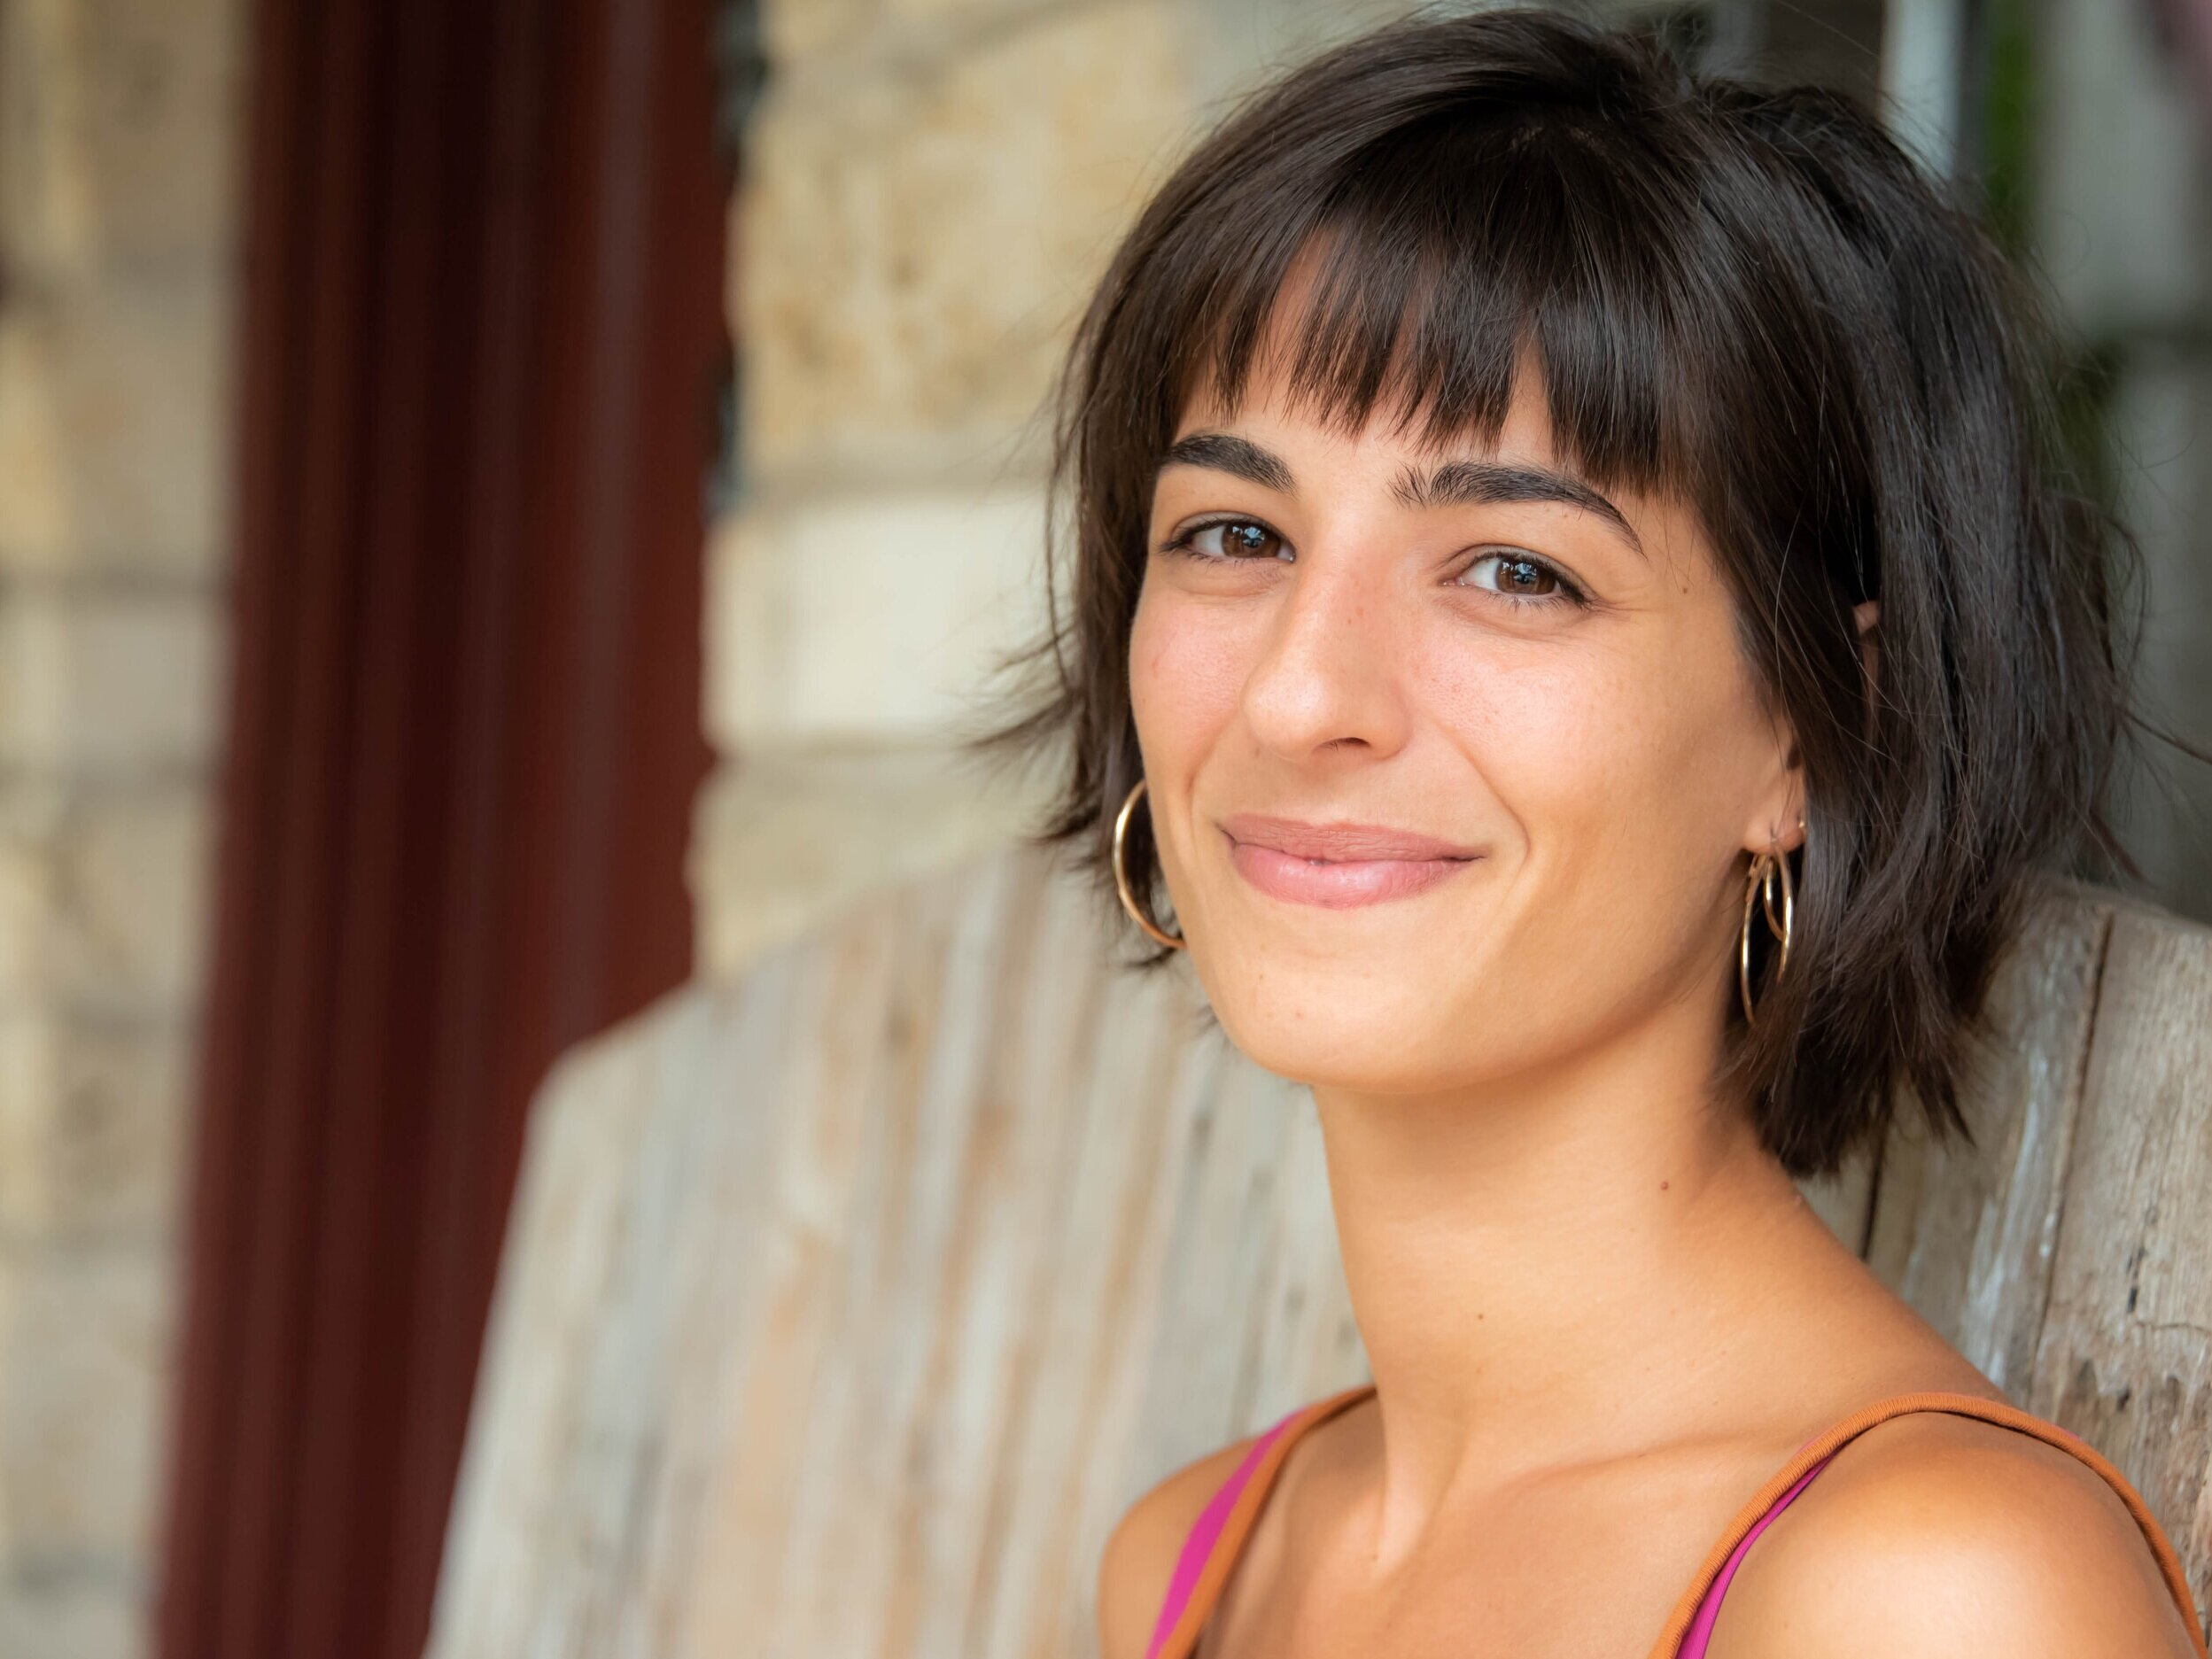 Julia Podgorsek - Teacher & Cine-Club Director   Julia was born and raised in a parisian banlieue called Créteil. She graduated in 2013 from the Sorbonne Nouvelle with a Master's Degree in English and Film. In fall 2014, she moved to Austin and one year later created the Alliance Française Ciné-Club and started working at the Alliance as a French and Literature teacher. She's deeply involved in making French and Francophone culture accessible to people by shedding a different light on it. She also loves figuring out the learning process of each of her students and adapting her teaching methods to them.  When she doesn't share her love for French and Film, she focuses on her passions for dancing and drumming.